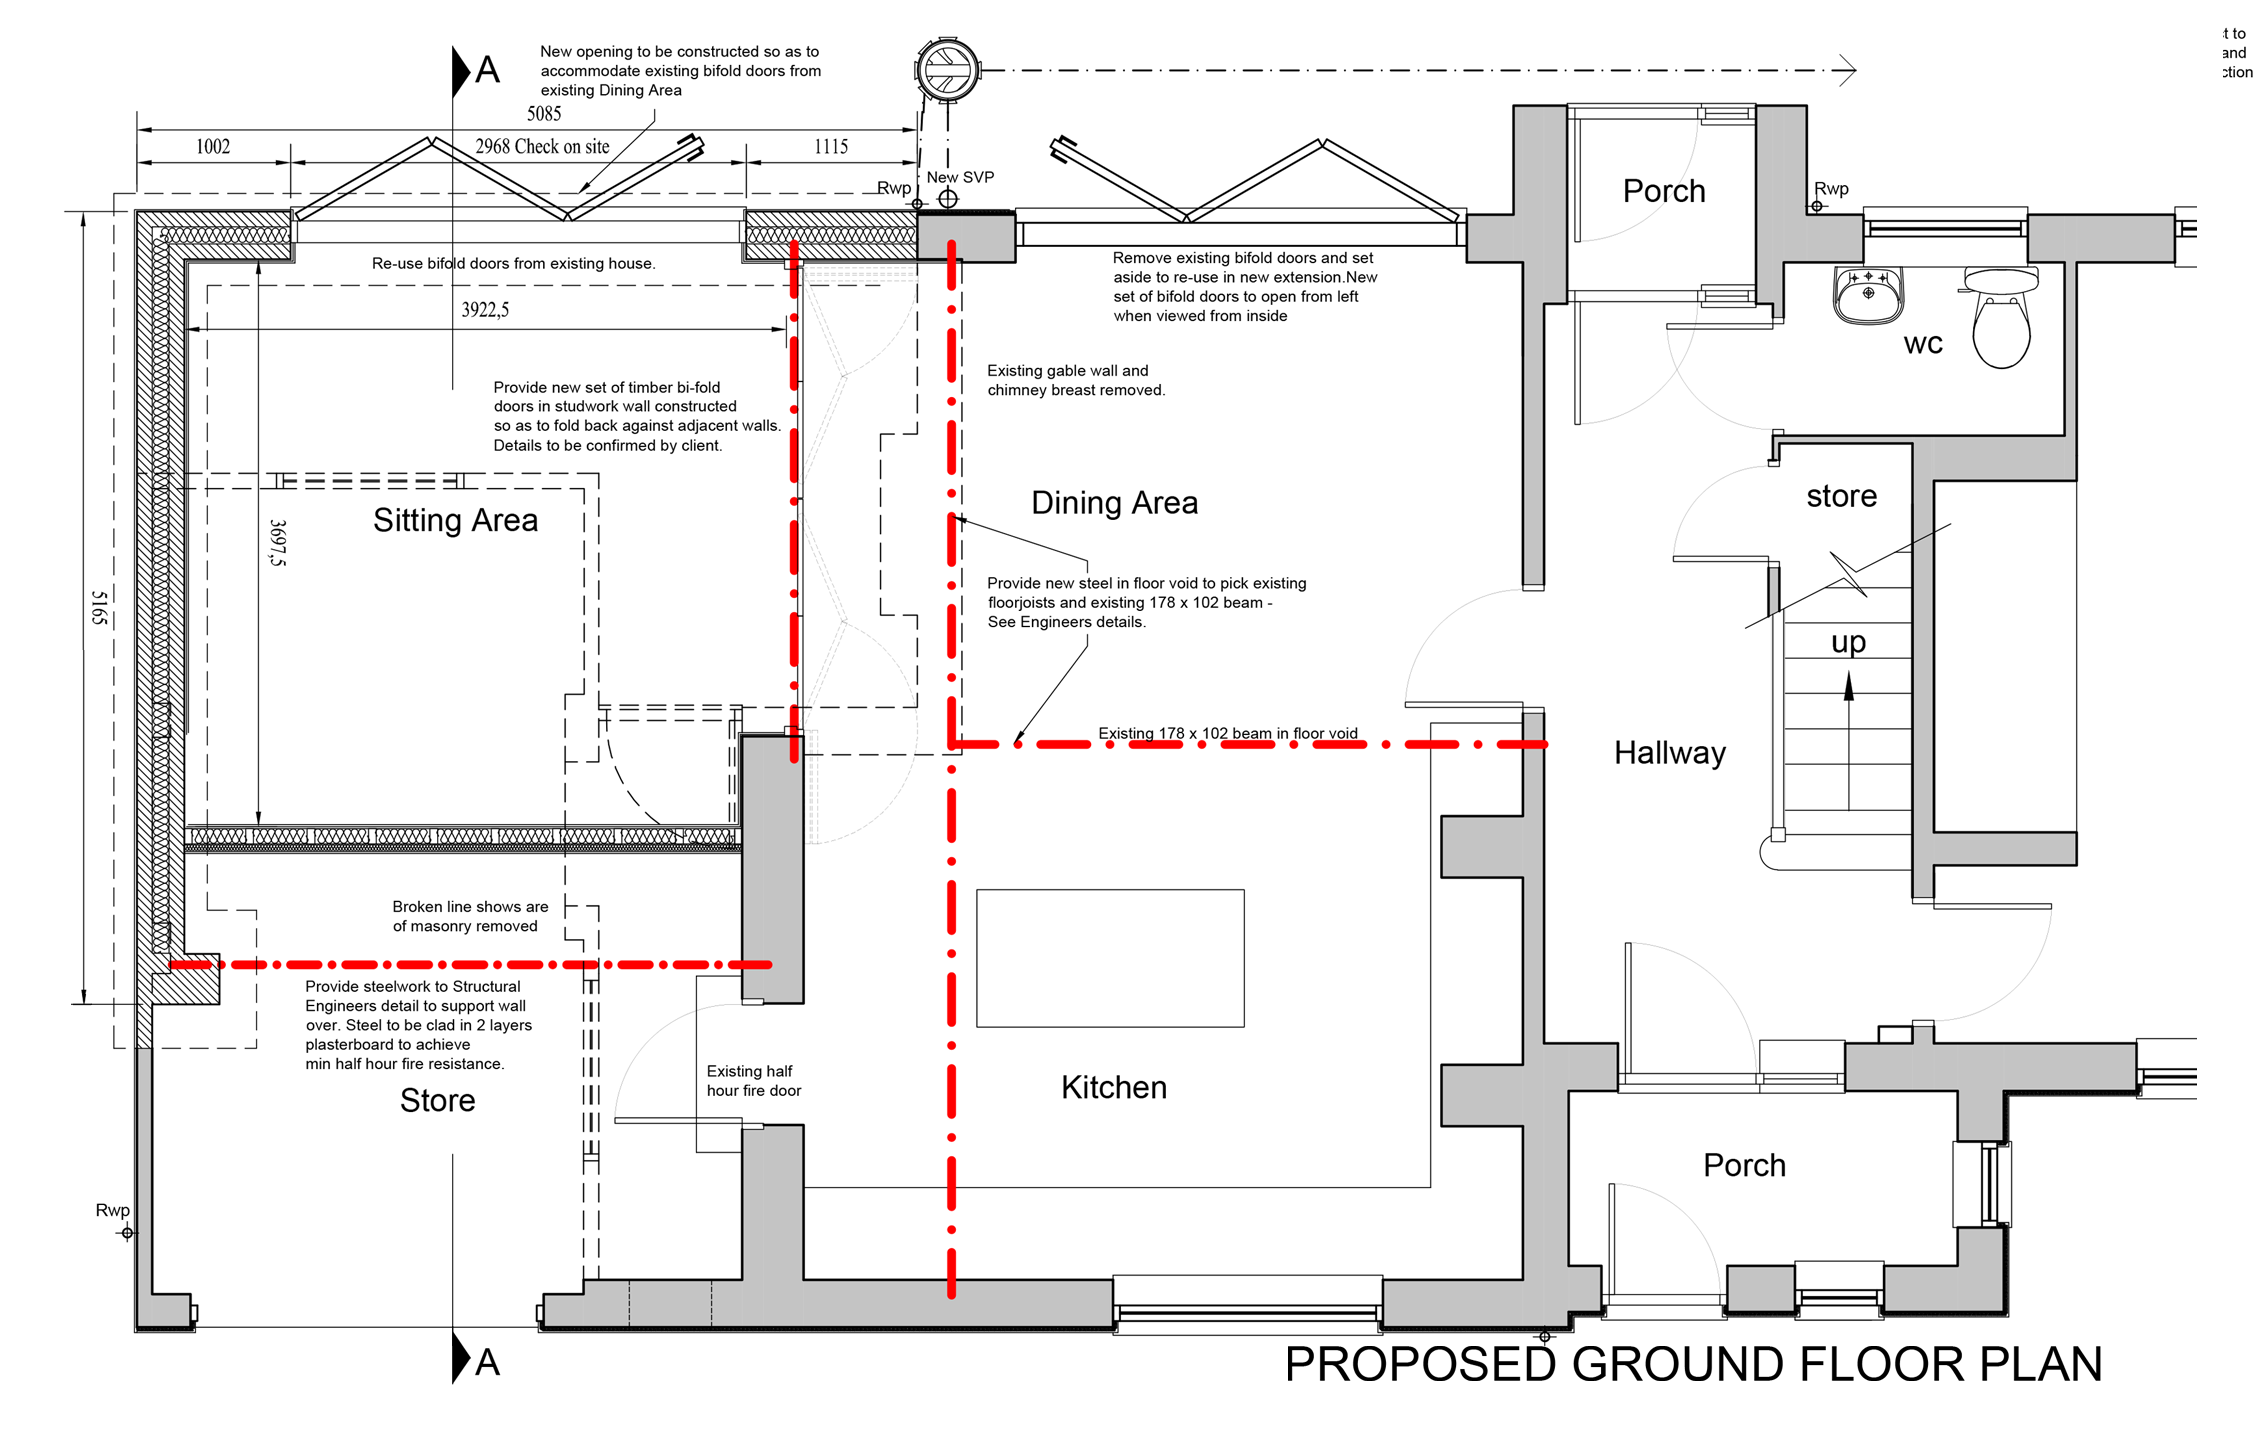 Ground Floor Proposed